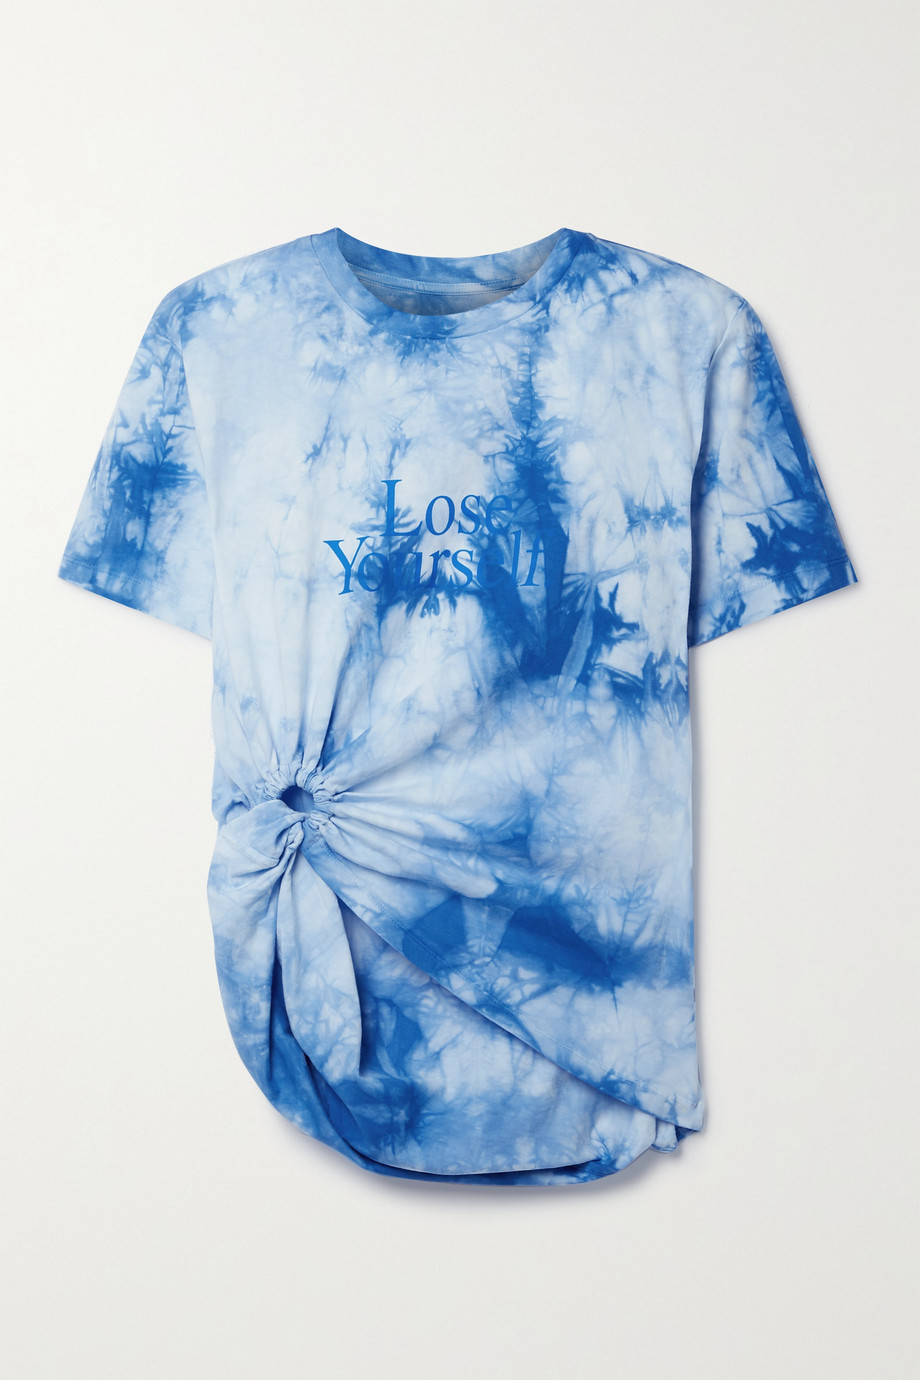 Paco Rabanne + Peter Saville knotted printed tie-dyed cotton-jersey T-shirt